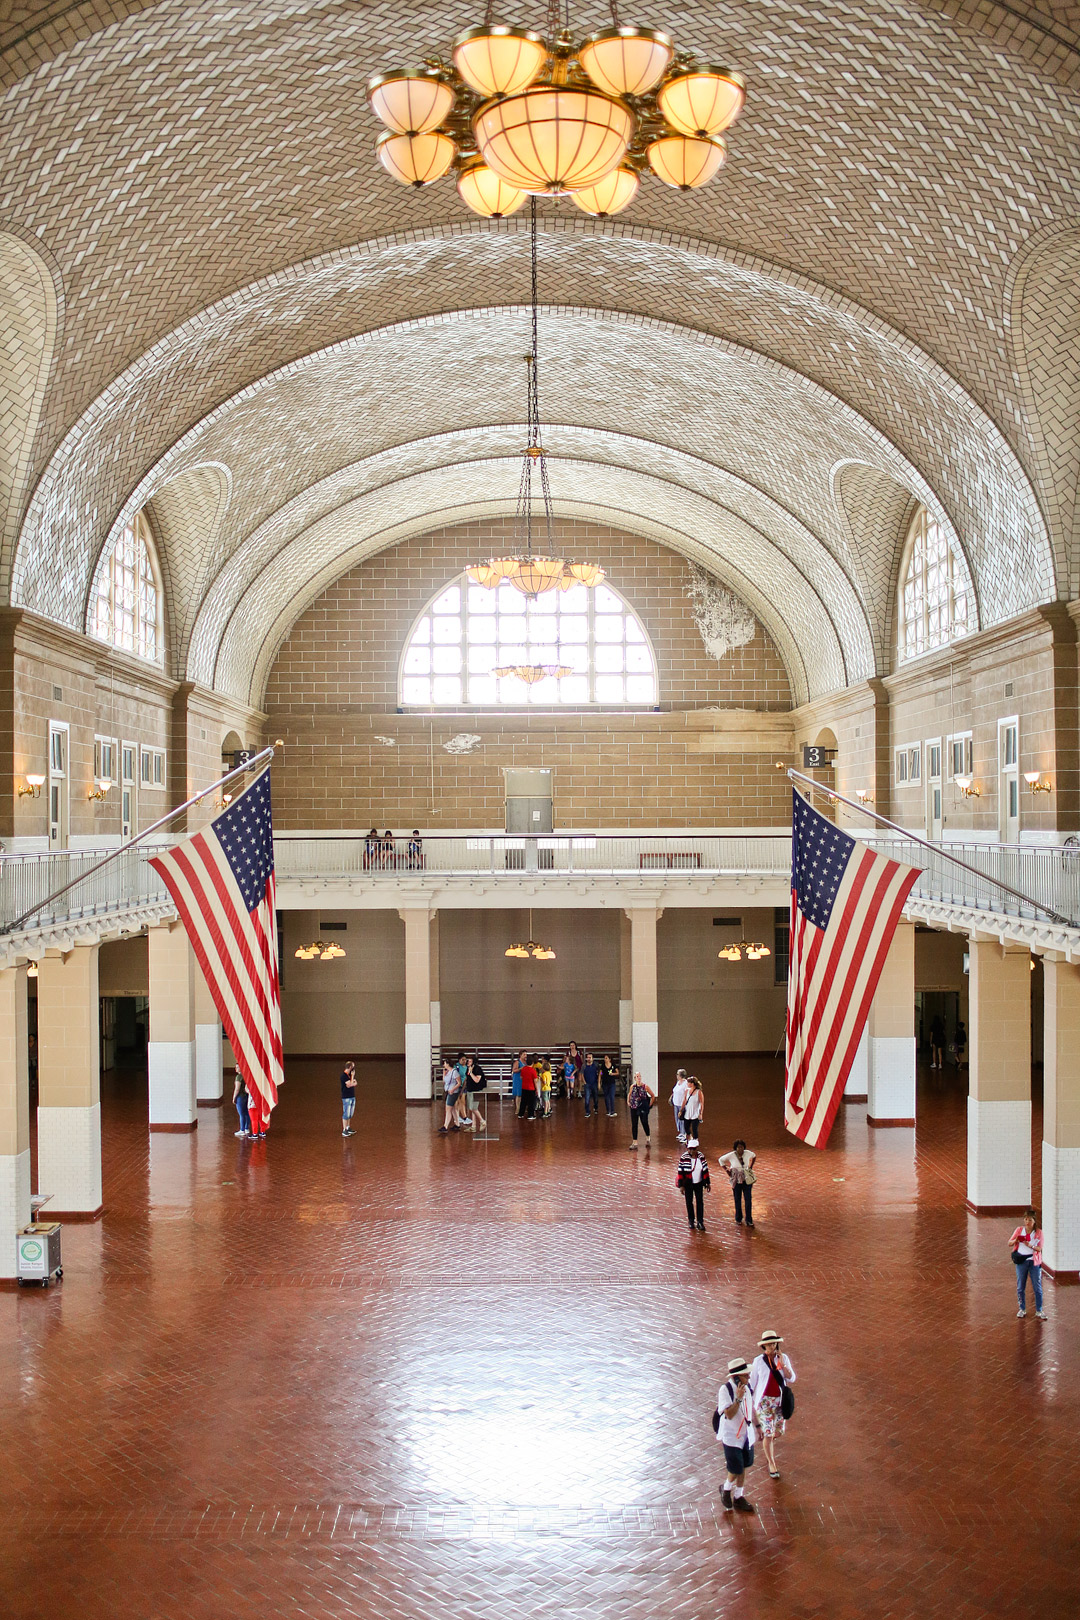 Ellis Island Immigration Museum + Don't leave the big apple without visiting these National Parks in New York City! Save this pin and click through to learn more about when you should visit and get inside tips on how to make the most of your time at places like the Statue of Liberty National Monument. We also include a list of upstate NY Parks, a list of all national parks in New York, and more. // Local Adventurer #seeyourcity #nycgo #nyc #iloveny #newyork #newyorkcity #visittheusa